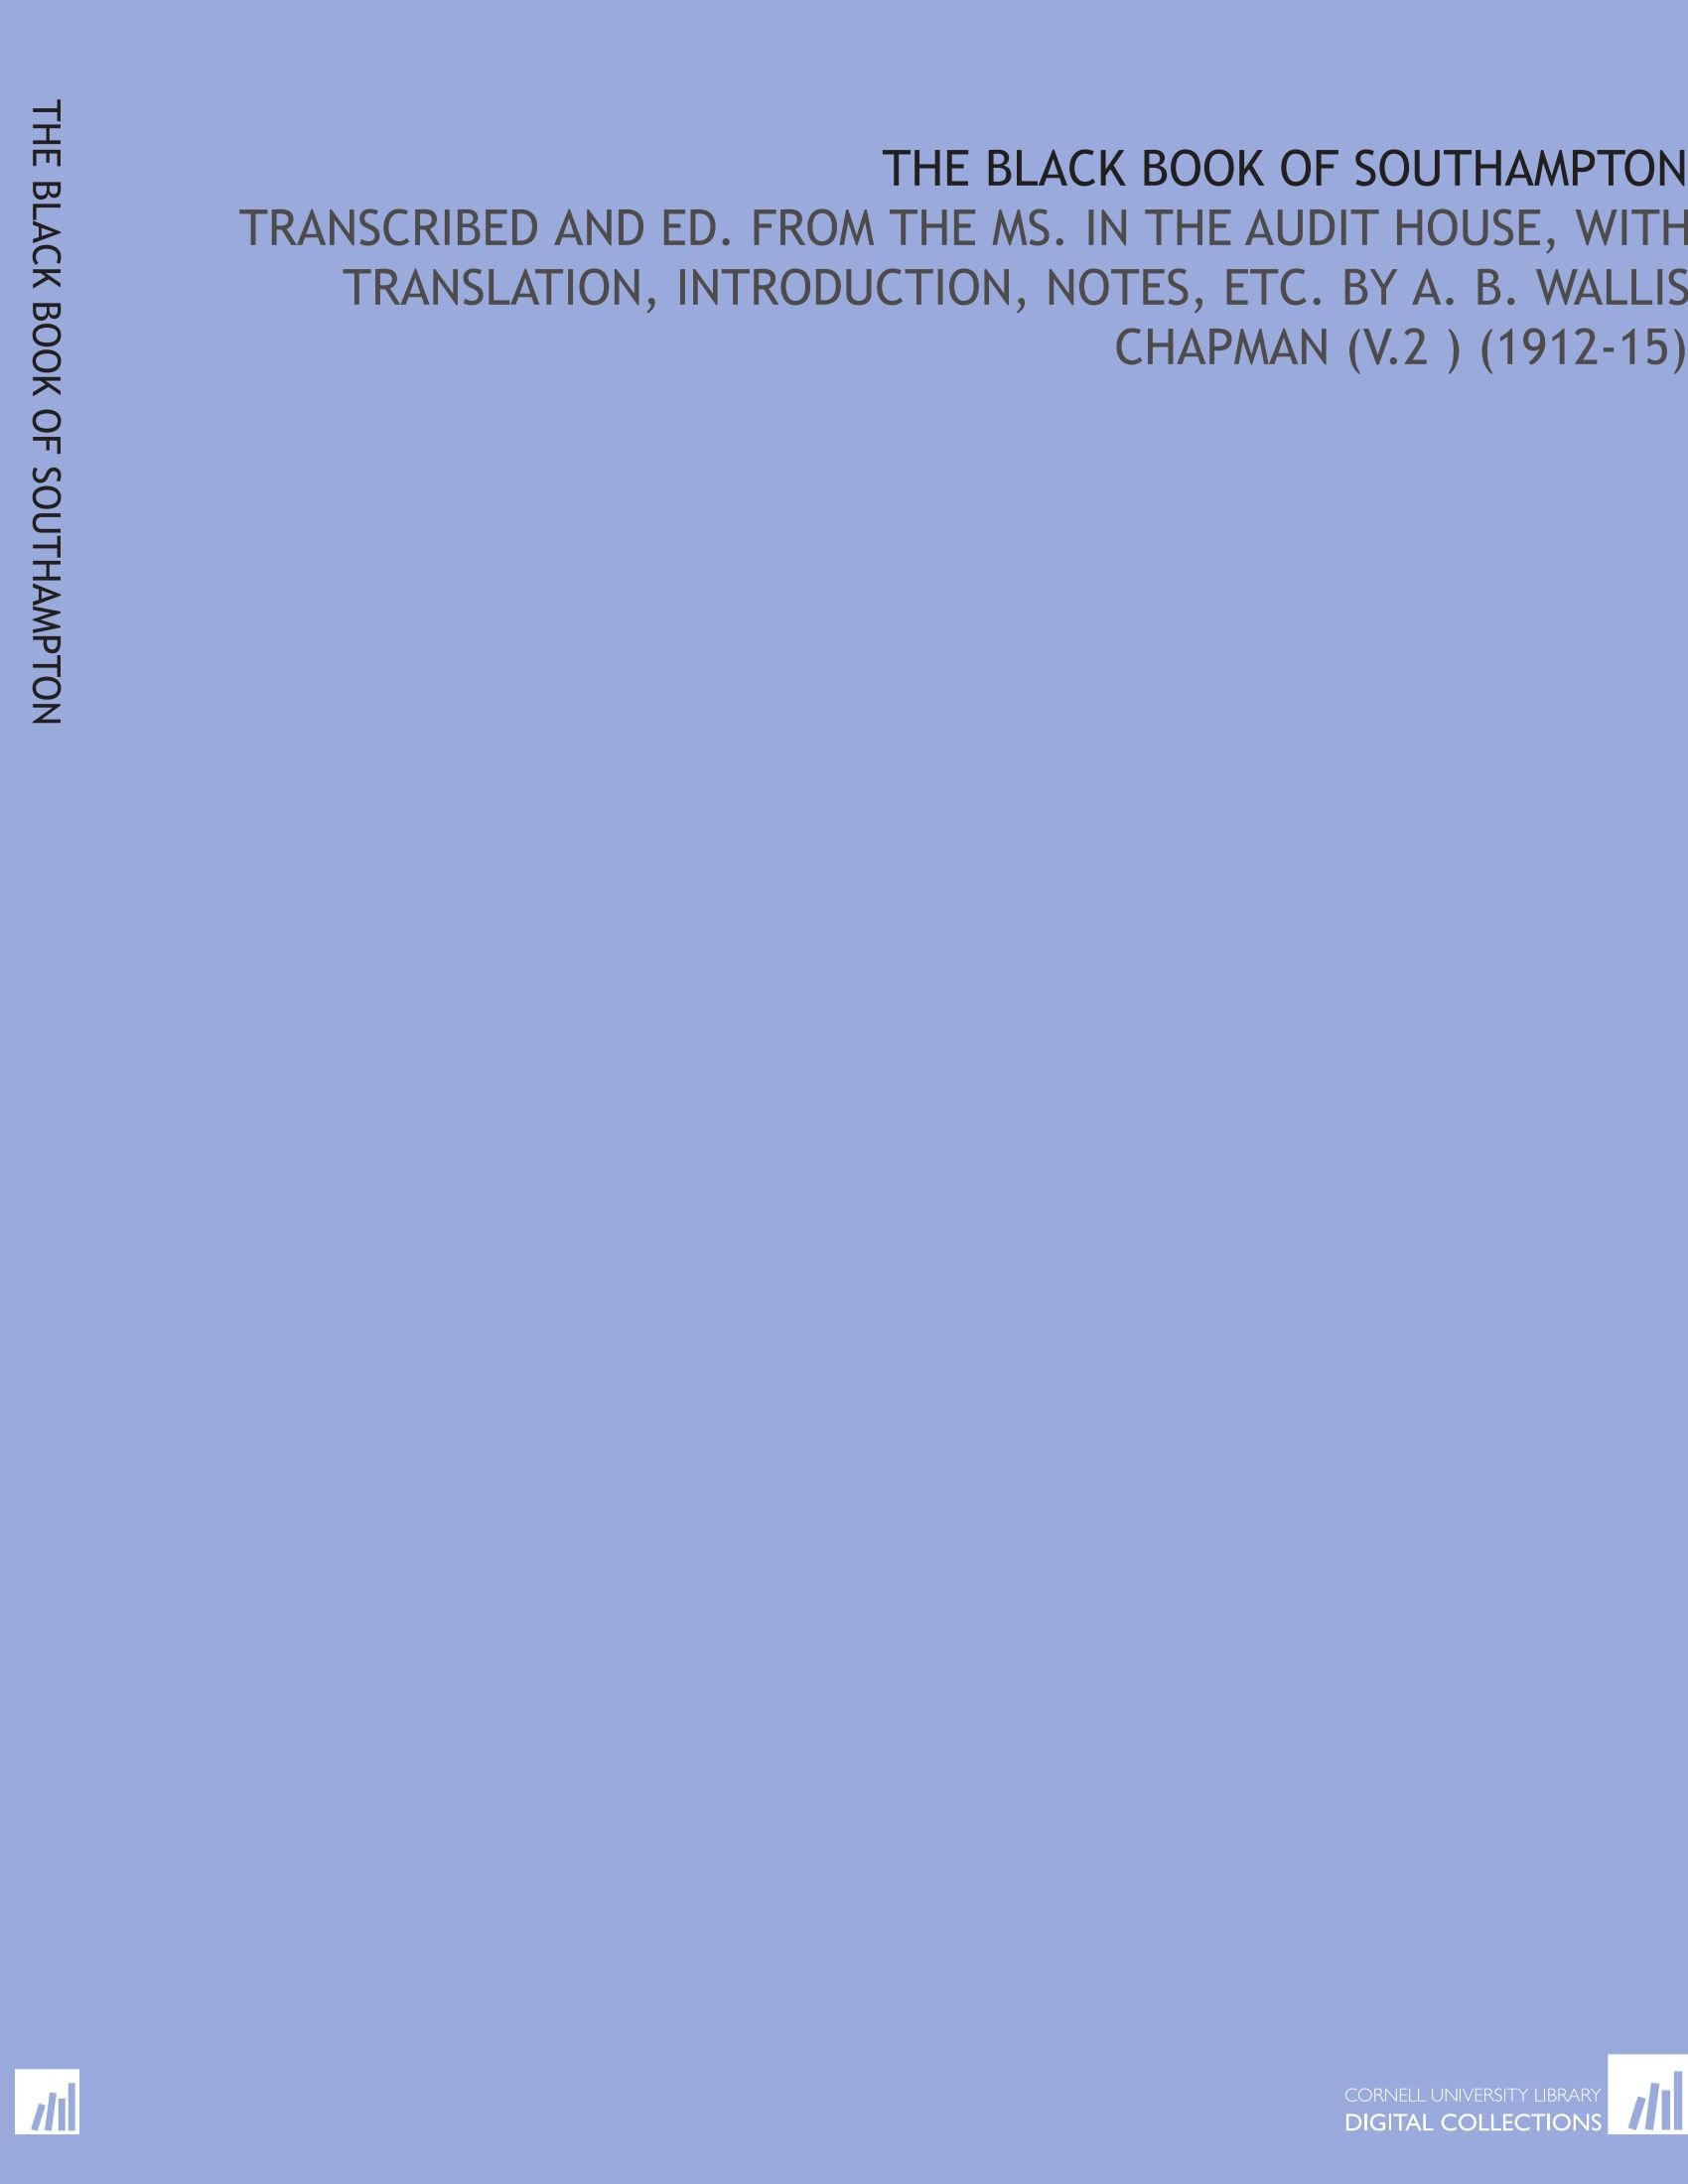 The Black Book of Southampton: Transcribed and Ed. From the Ms. In the Audit House, With Translation, Introduction, Notes, Etc. By a. B. Wallis Chapman (V.2 ) (1912-15) pdf epub